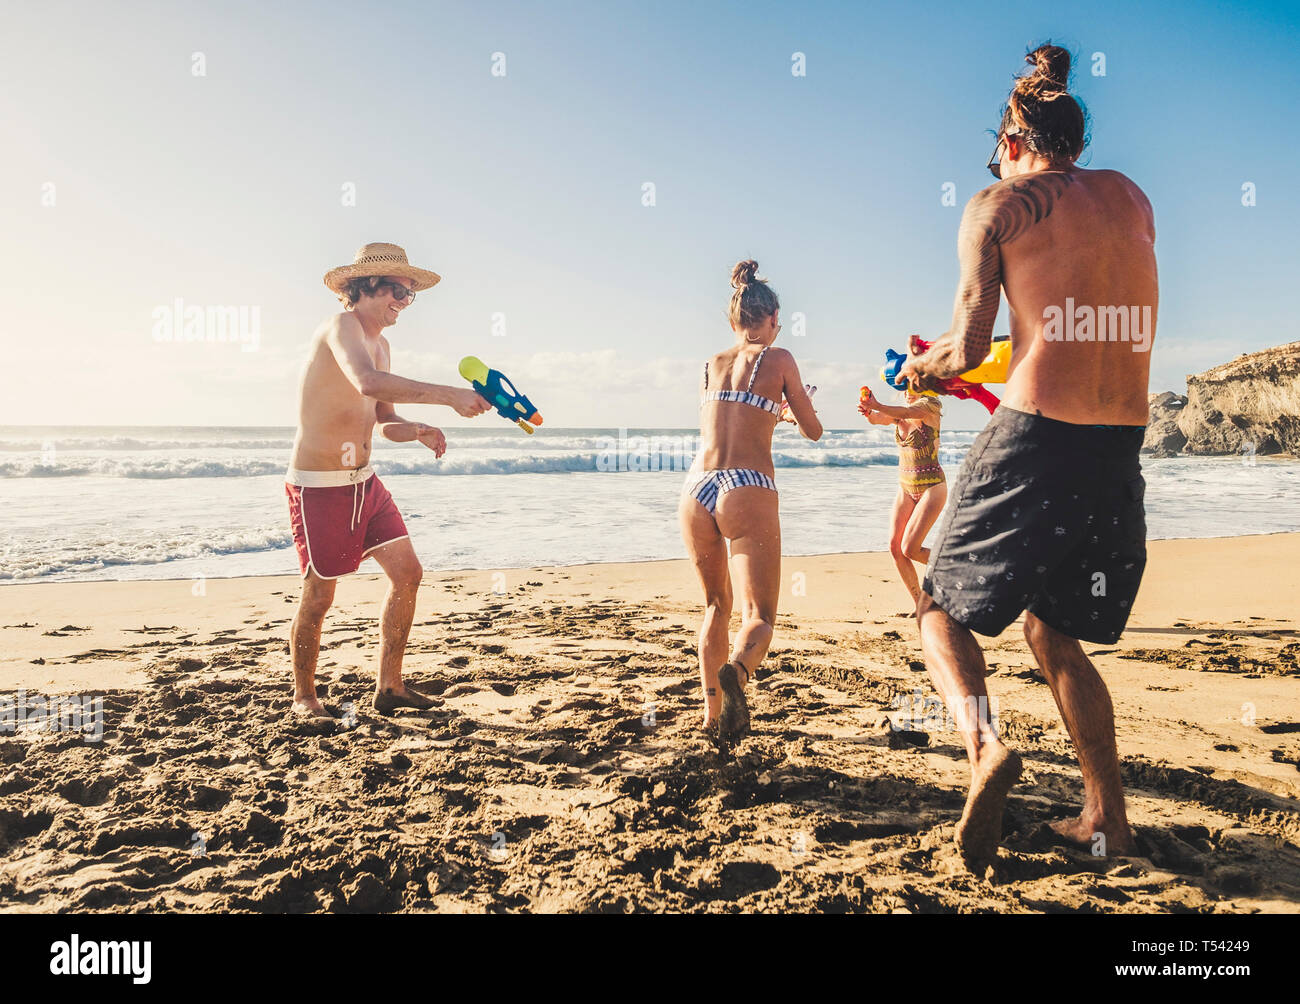 Group of people young caucasian men and women play with water gun at the beach during friends vacation together in outdoor in a sunny day of holiday - Stock Photo